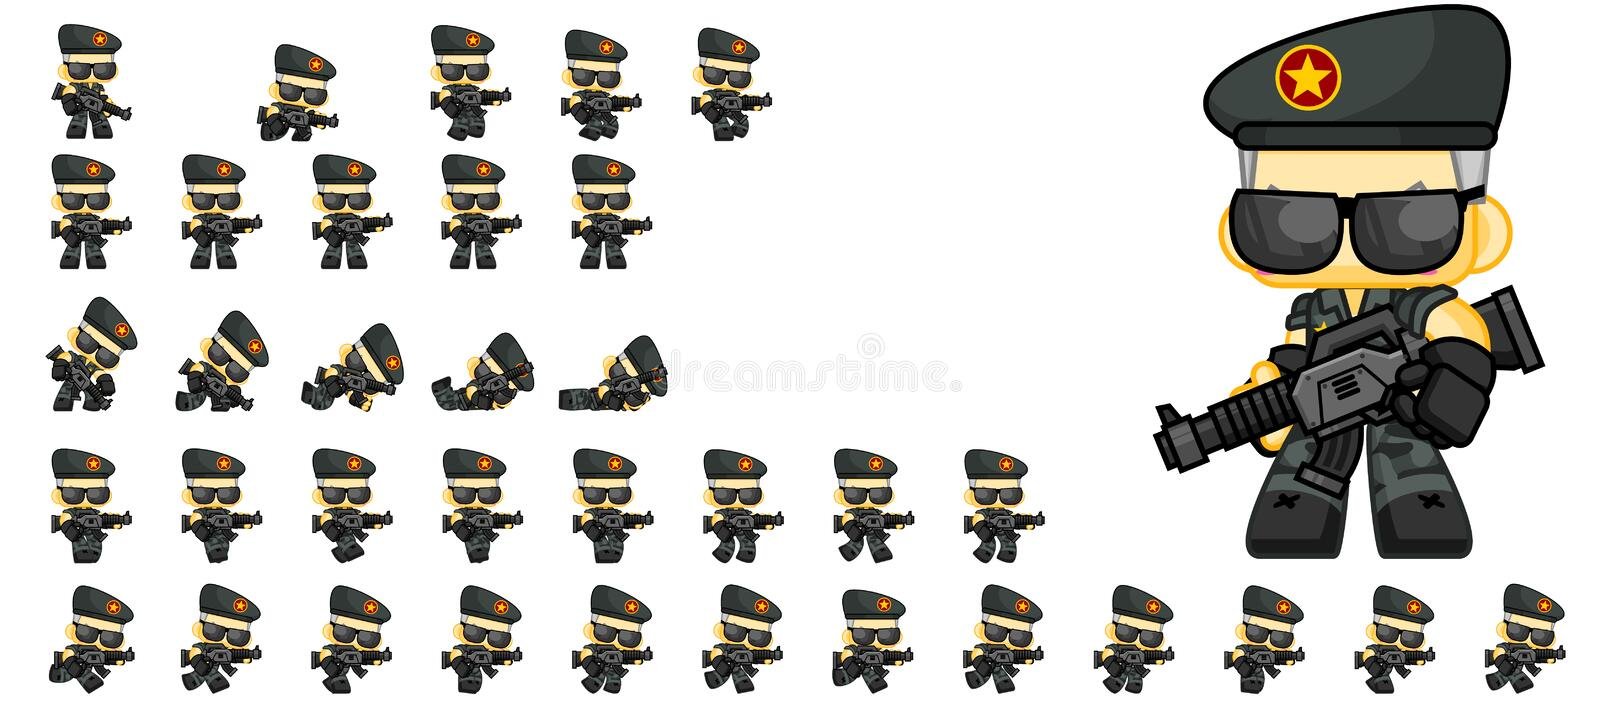 Cute Soldier Character Sprites stock illustration